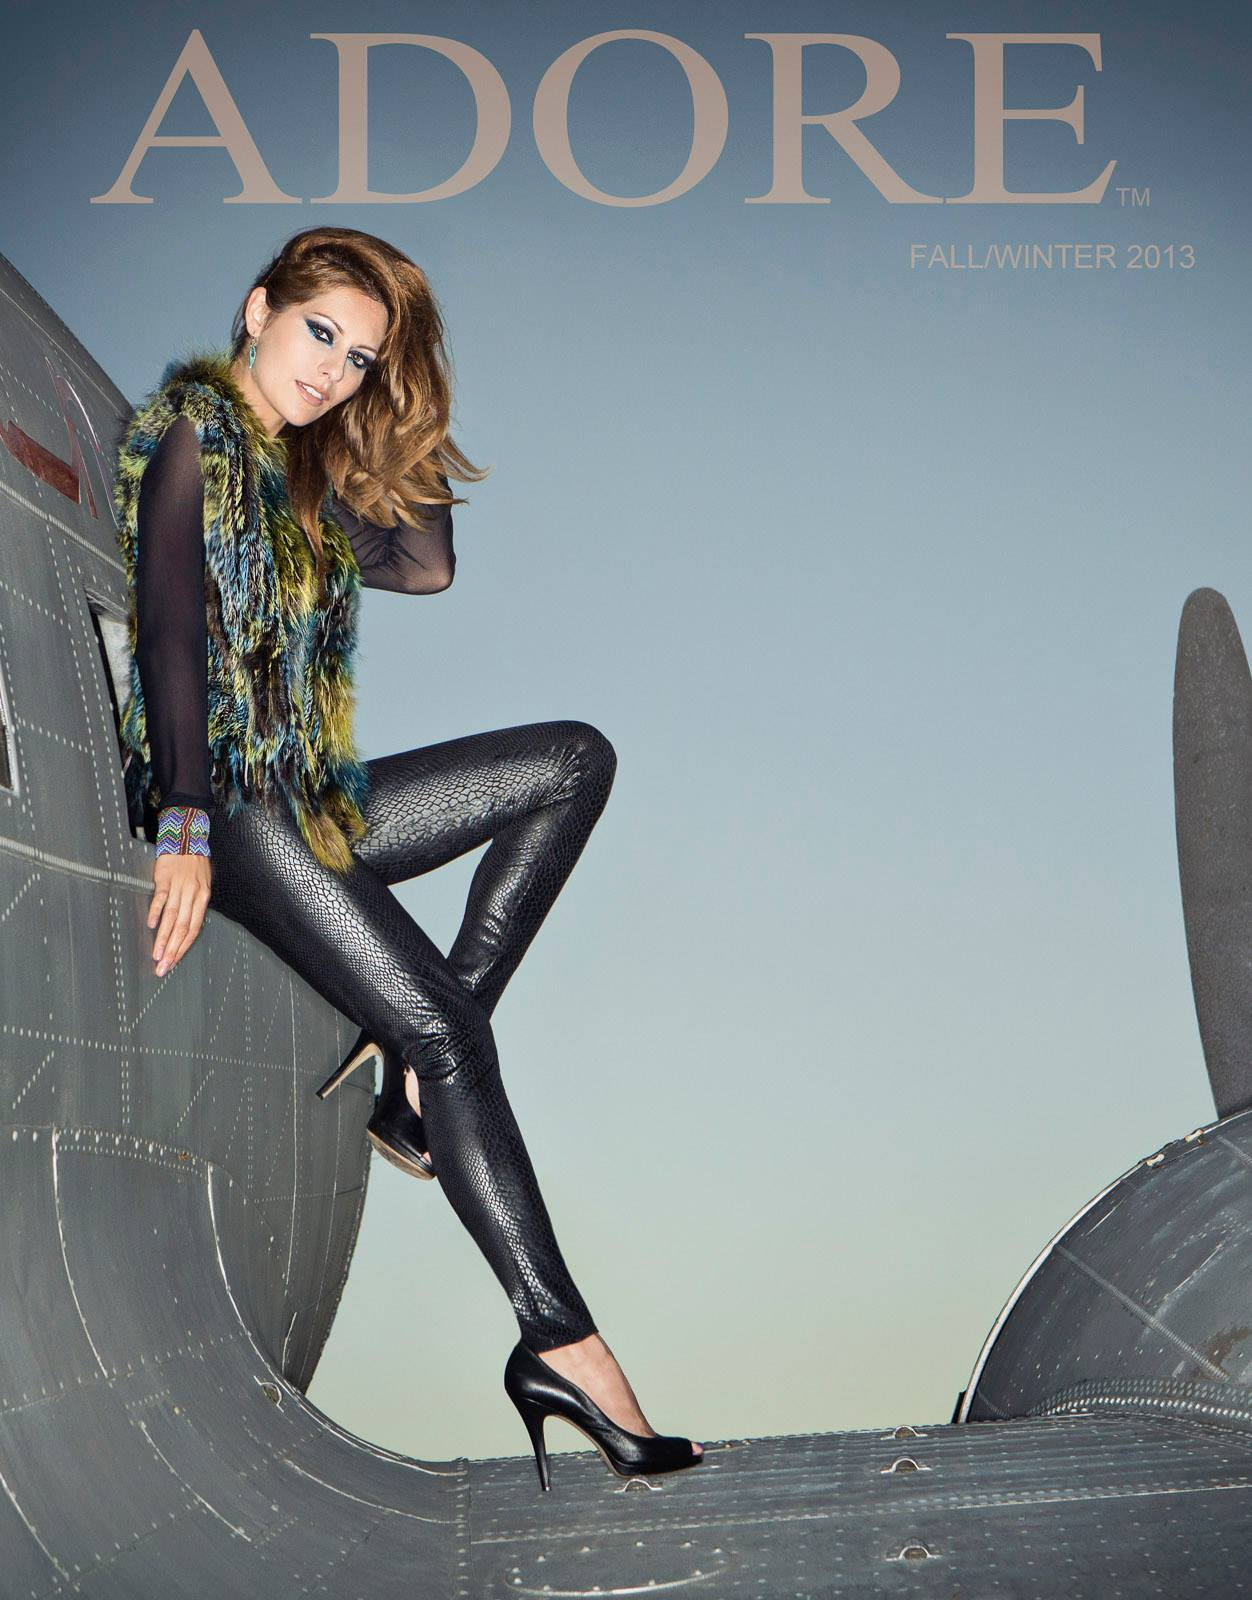 Adore Los Angeles adore apparel f/w 2013 fashion campaign, shot by james hickey